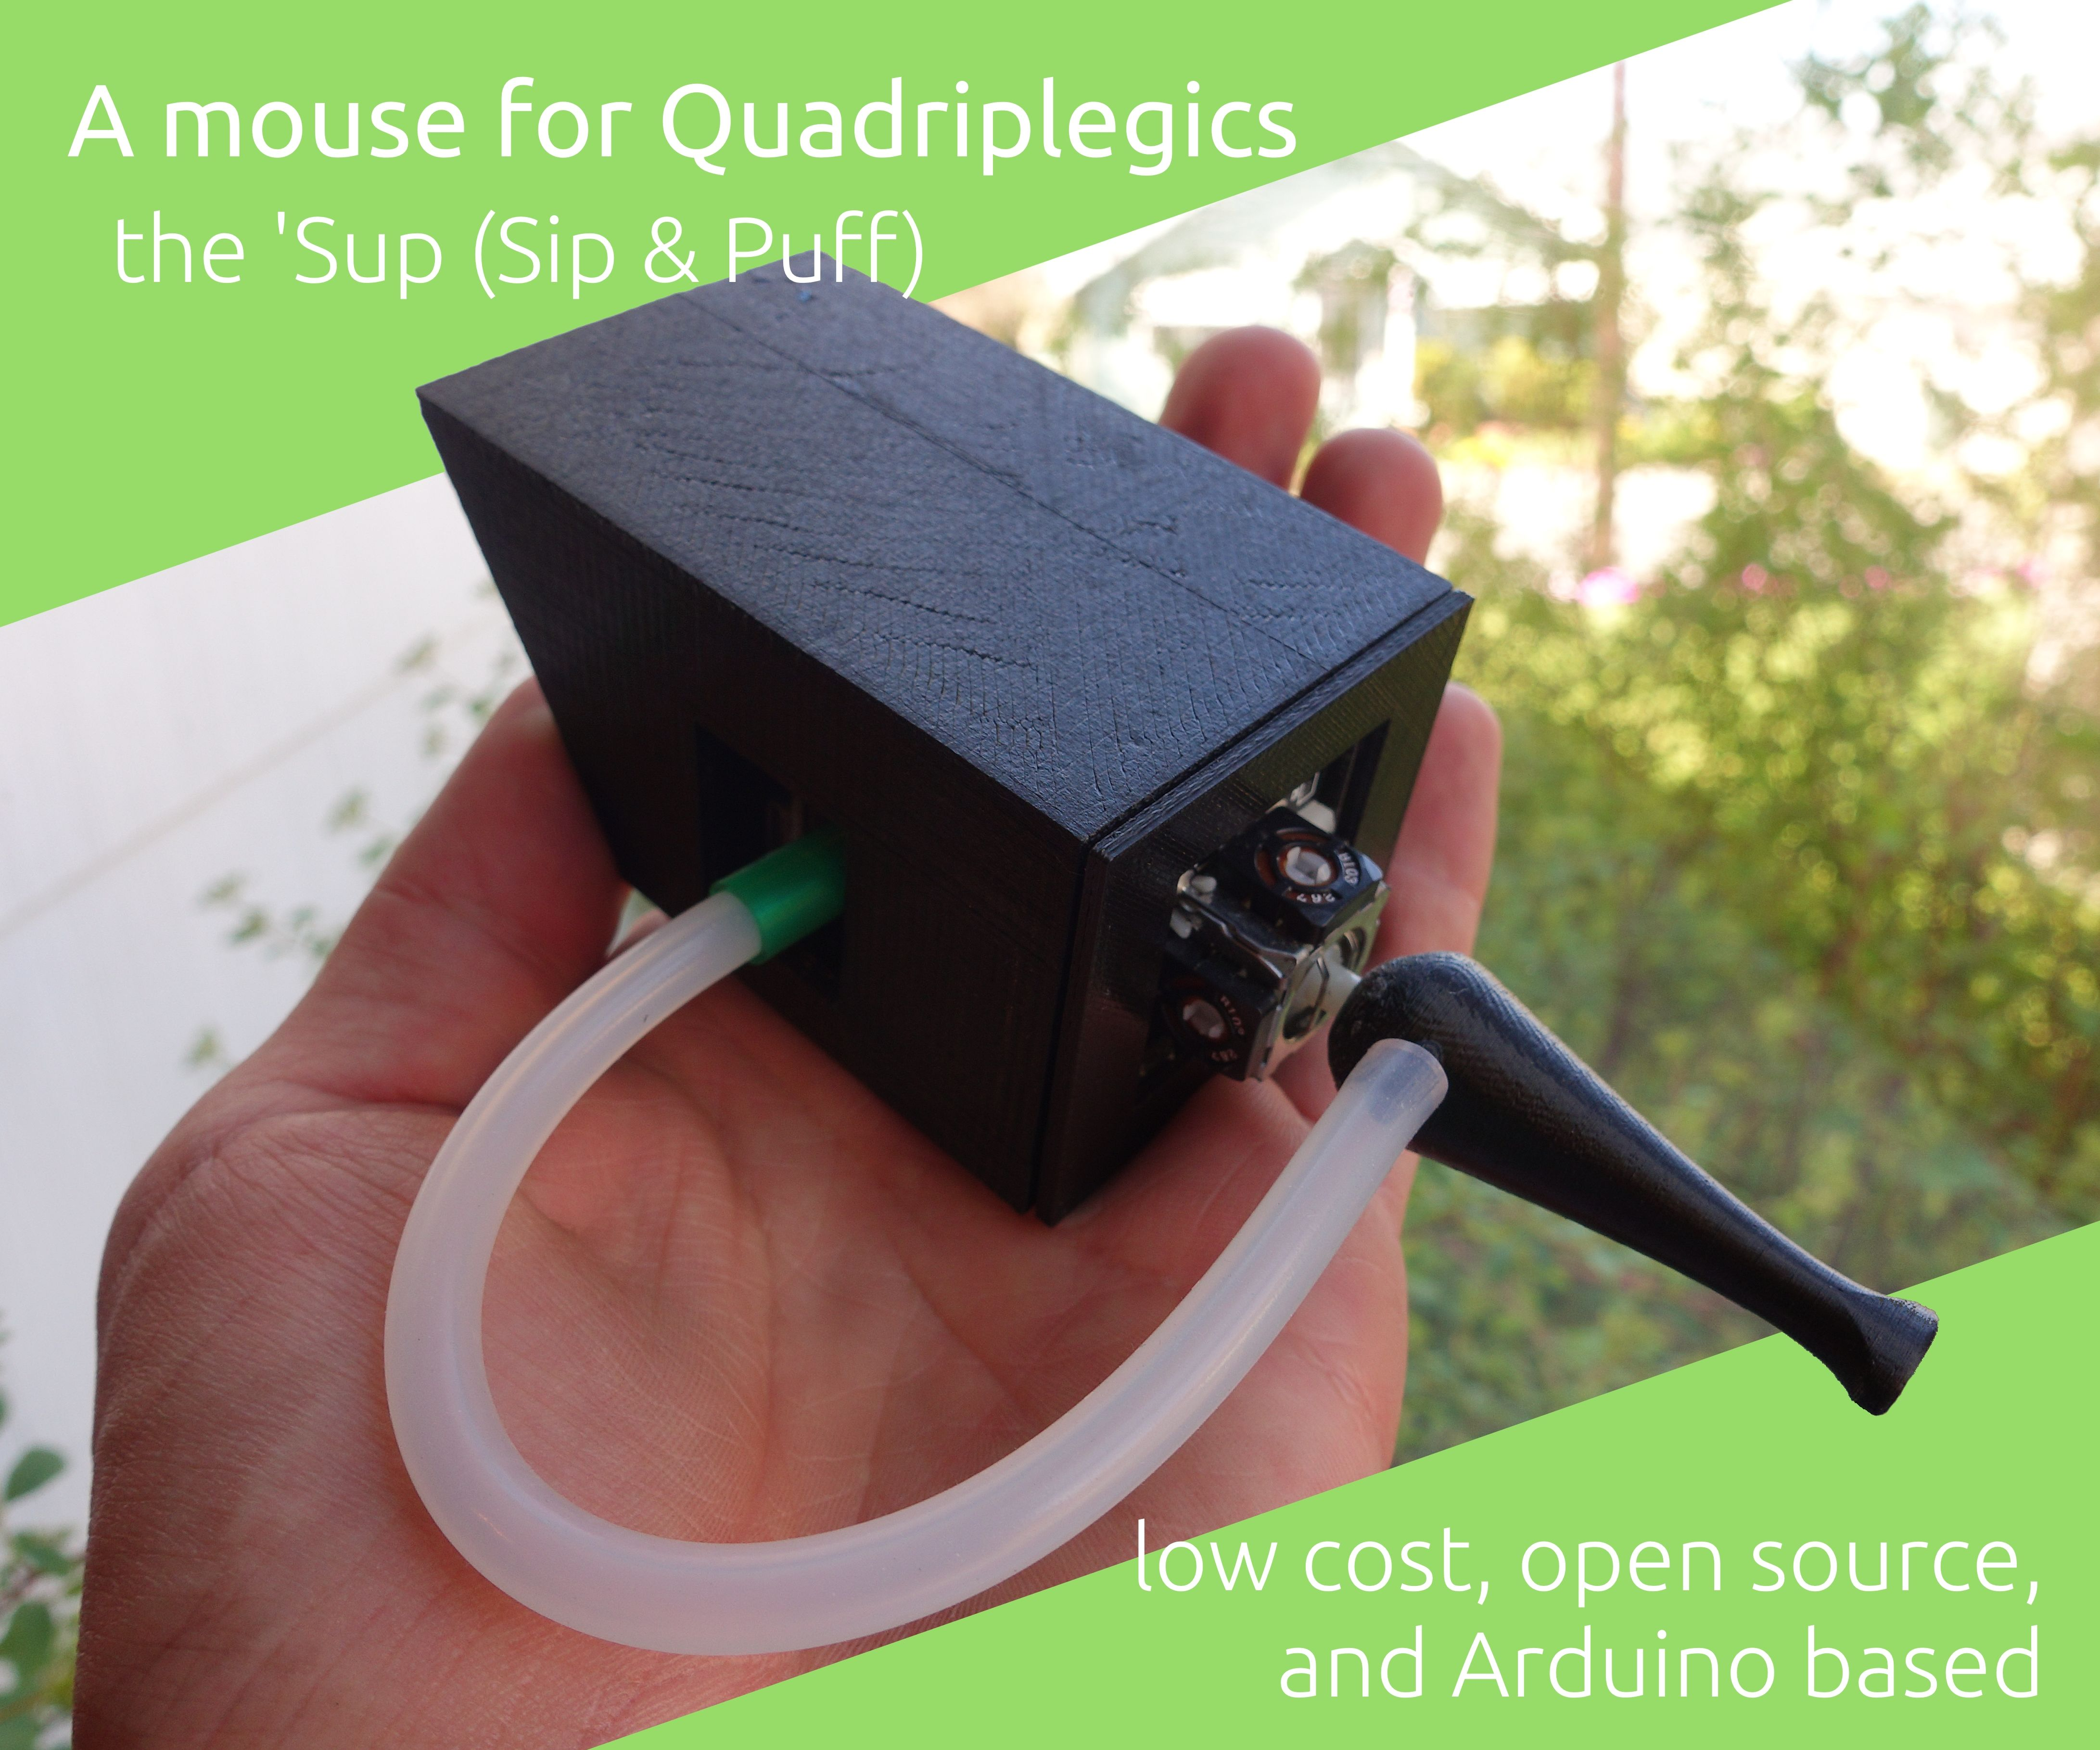 The 'Sup - a Mouse for Quadriplegics - Low Cost and Open Source